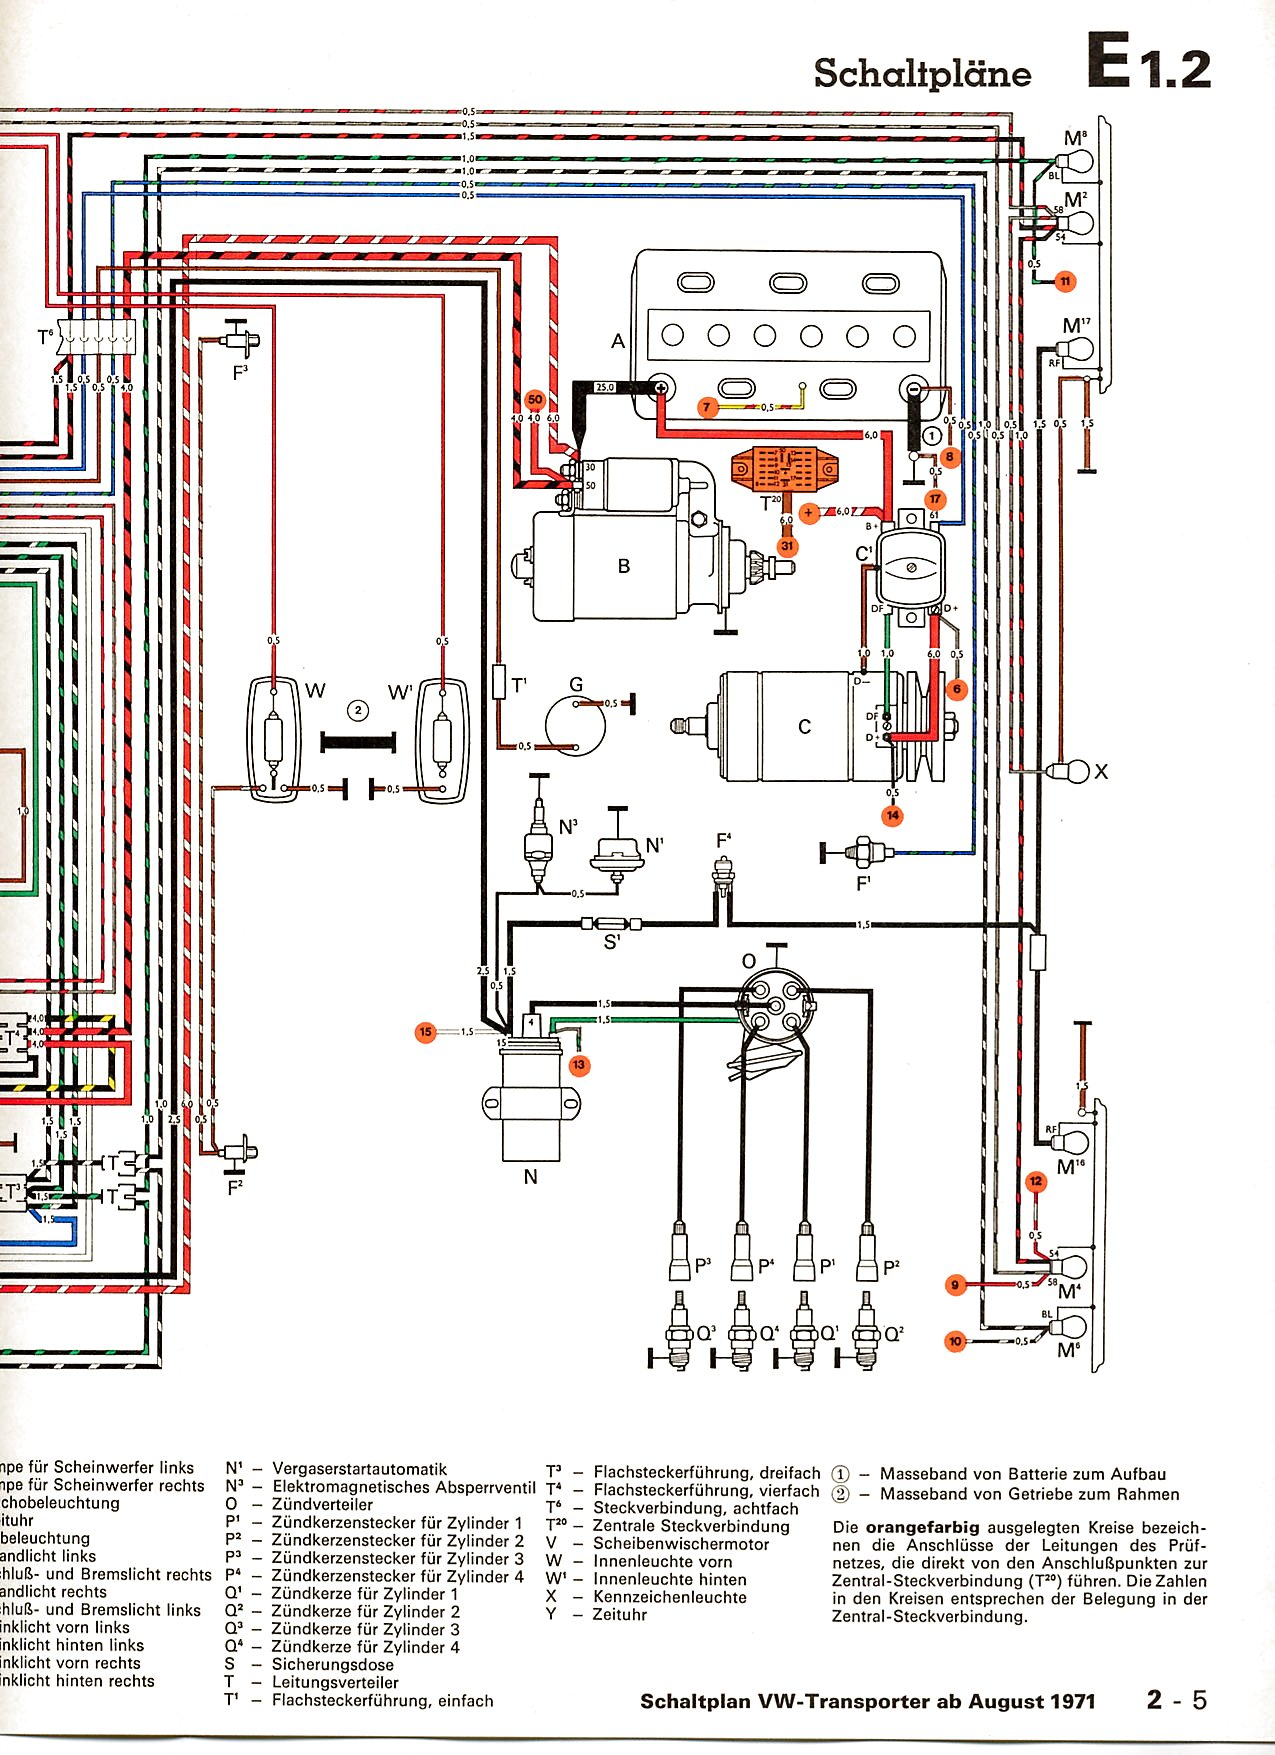 VW Wiring Diagrams on volkswagen fuse diagram, volkswagen relay diagram, volkswagen chassis, volkswagen engine diagram, volkswagen clutch diagram, volkswagen fuse chart, volkswagen air conditioning, volkswagen charging system diagram, volkswagen transaxle diagram, volkswagen ignition diagram, volkswagen fuel diagram, volkswagen brakes diagram, volkswagen firing order, volkswagen torque specs, volkswagen oil diagram, volkswagen key diagram, volkswagen vacuum diagram, volkswagen electrical system, volkswagen r400,